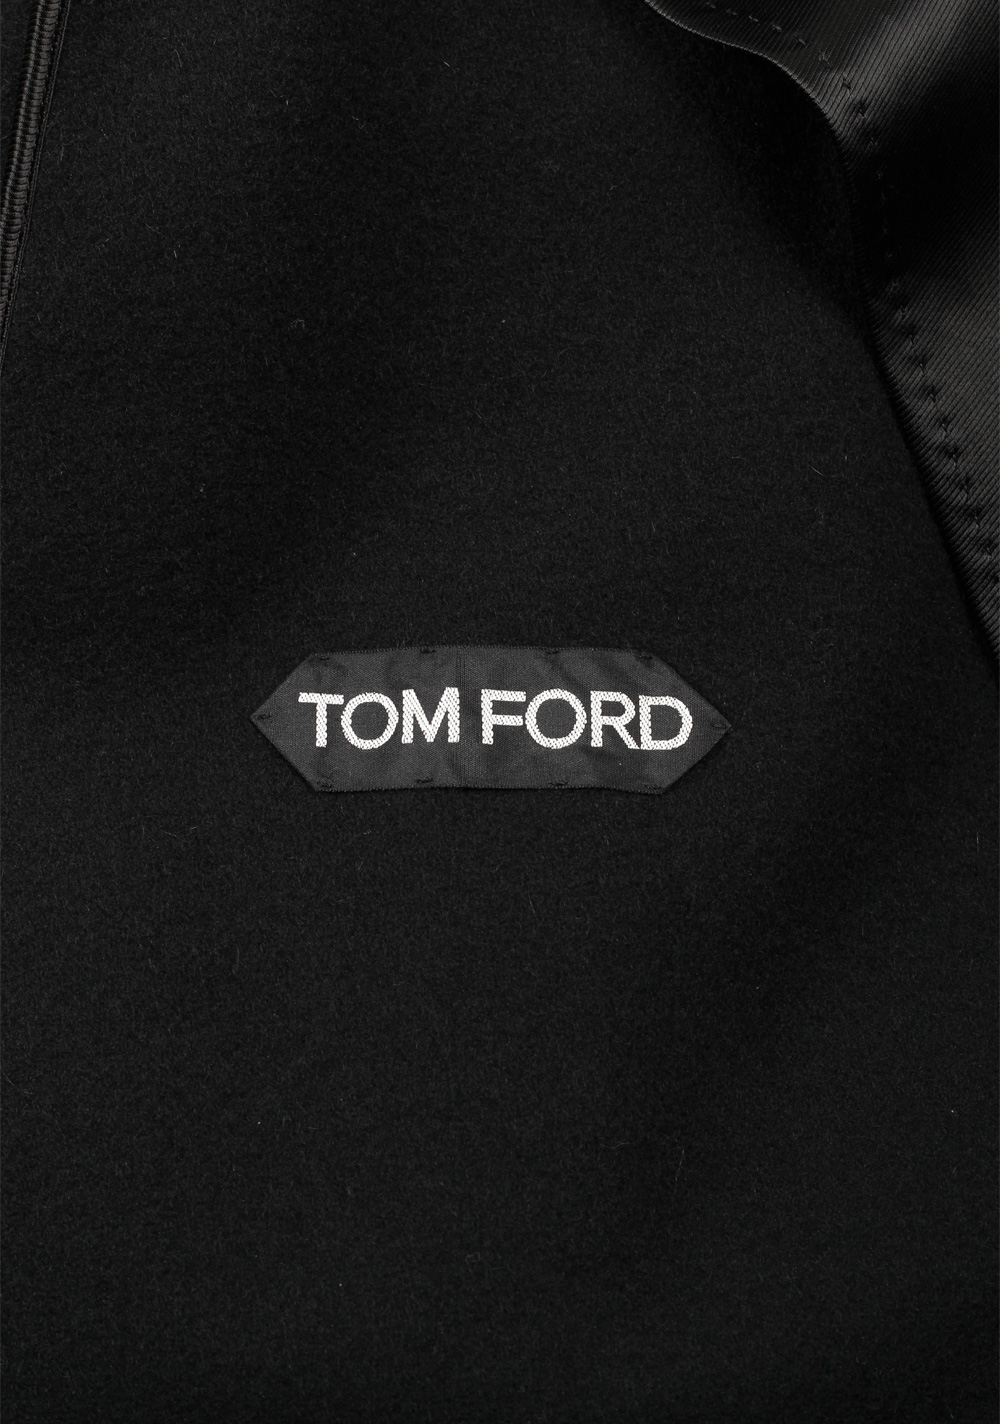 TOM FORD Shearling Trimmed Black Over Coat Size 56 / 46R U.S. Outerwear   Costume Limité